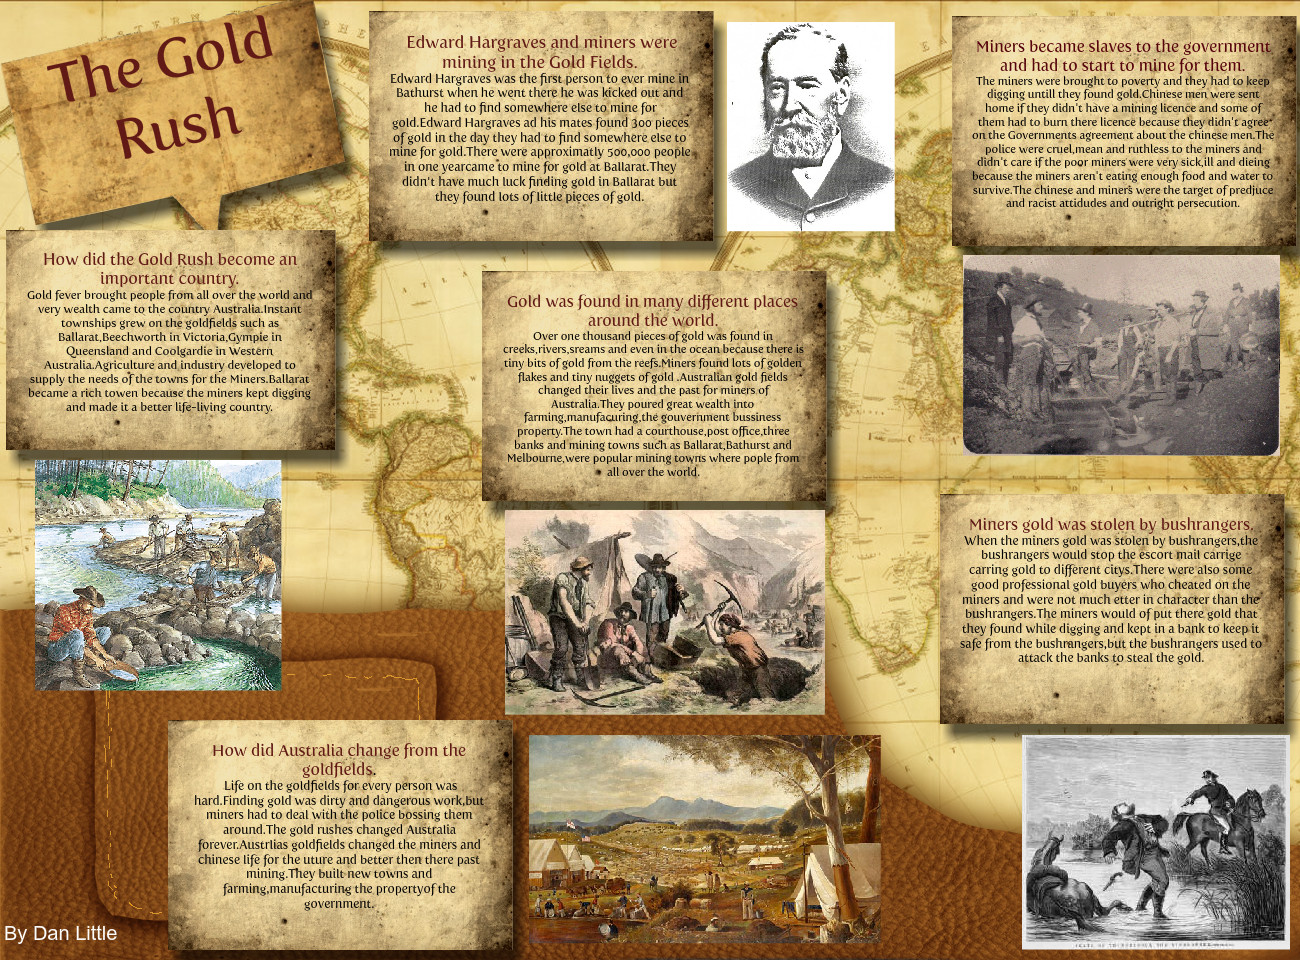 how did the gold rush change australia